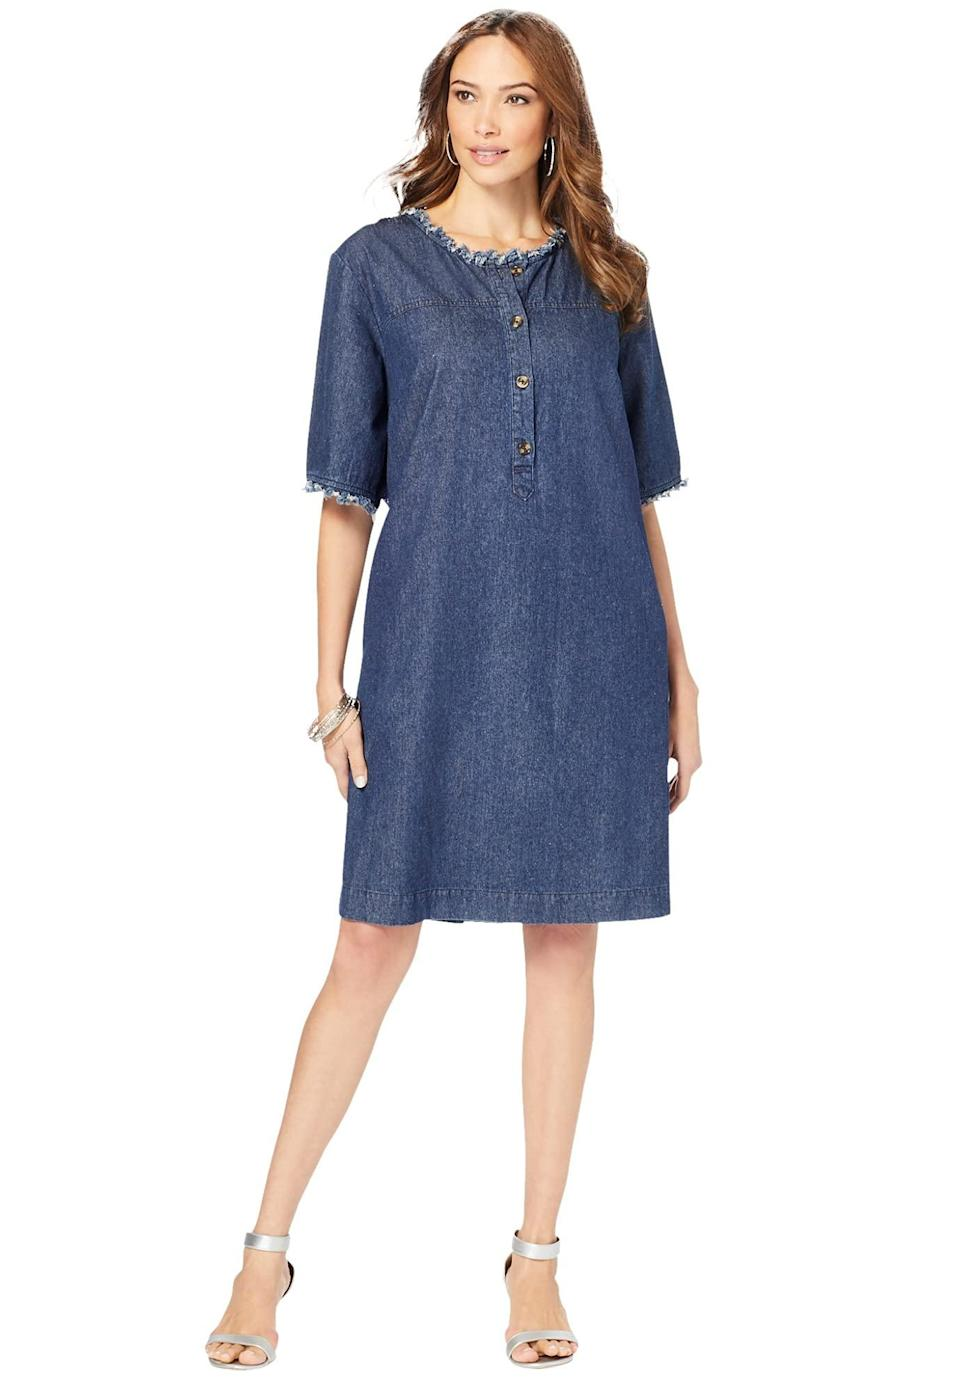 """<br><br><strong>Roaman's</strong> Plus Size Denim Shirt Dress, $, available at <a href=""""https://amzn.to/3CoG1l2"""" rel=""""nofollow noopener"""" target=""""_blank"""" data-ylk=""""slk:Amazon"""" class=""""link rapid-noclick-resp"""">Amazon</a>"""